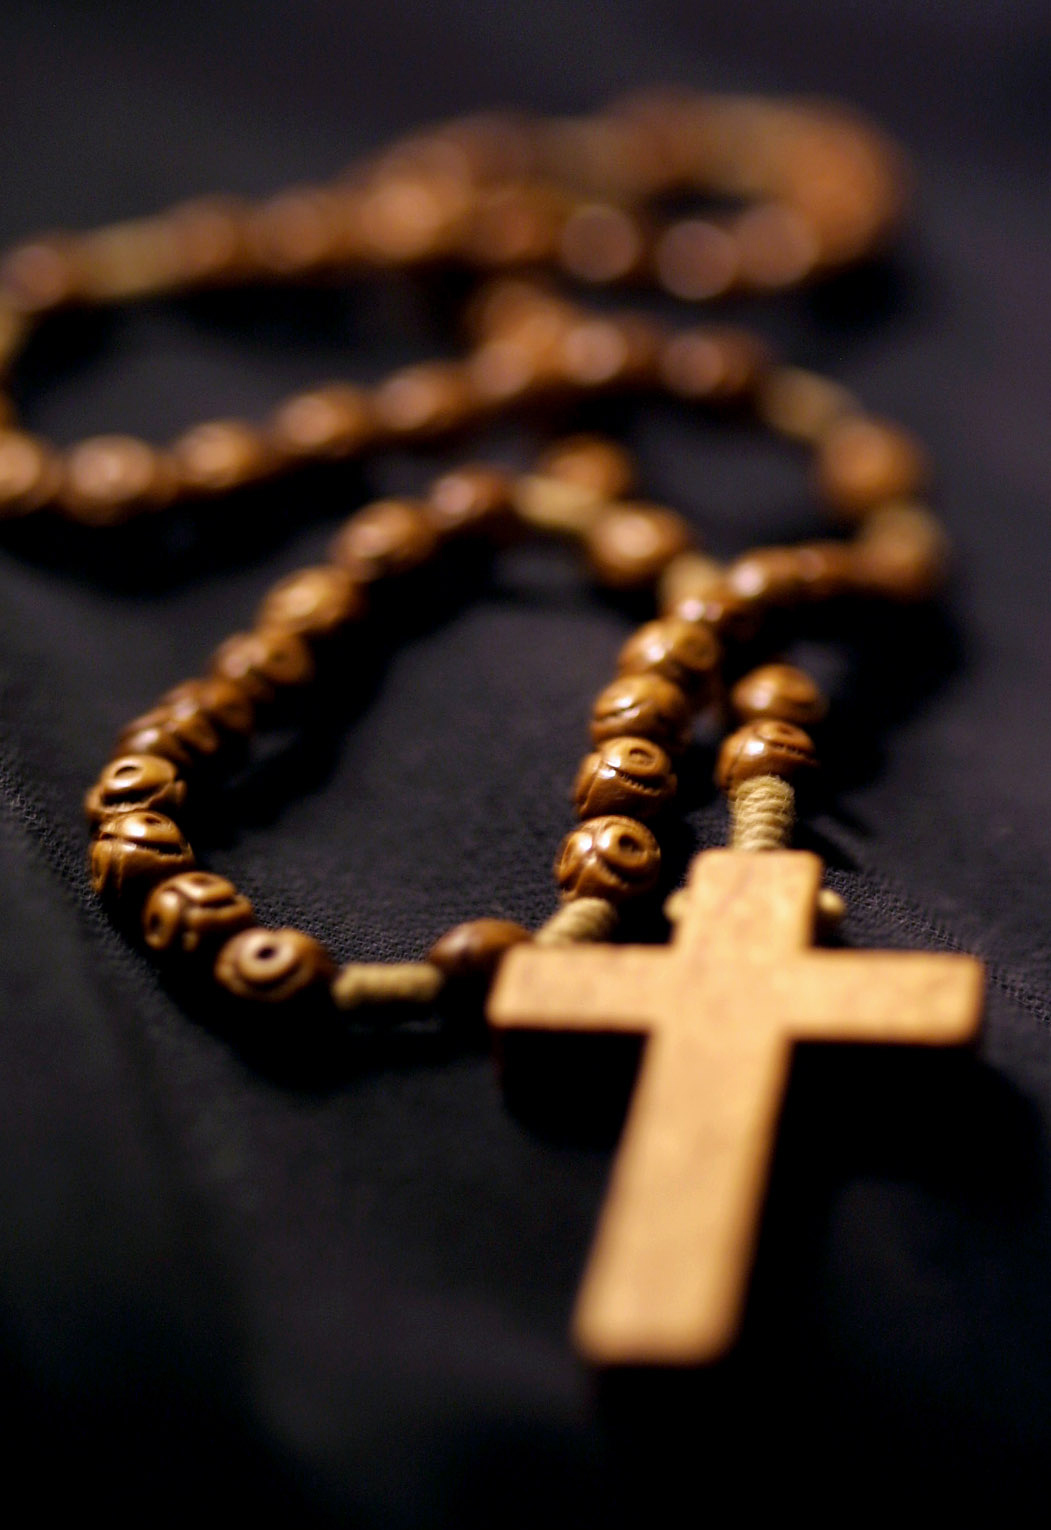 "Pope John Paul II made an appeal to people around the world to pray the rosary daily to help protect humanity from the ""evil scourge"" of terrorism. The rosary, the most common of Catholic devotional prayers, consists of reciting Hail Marys, the Lord's Prayer and the Doxology on a string of beads. (CNS photo by Nancy Wiechec) (Oct. 1, 2001) See POPE-ROSARY Oct. 1, 2001."